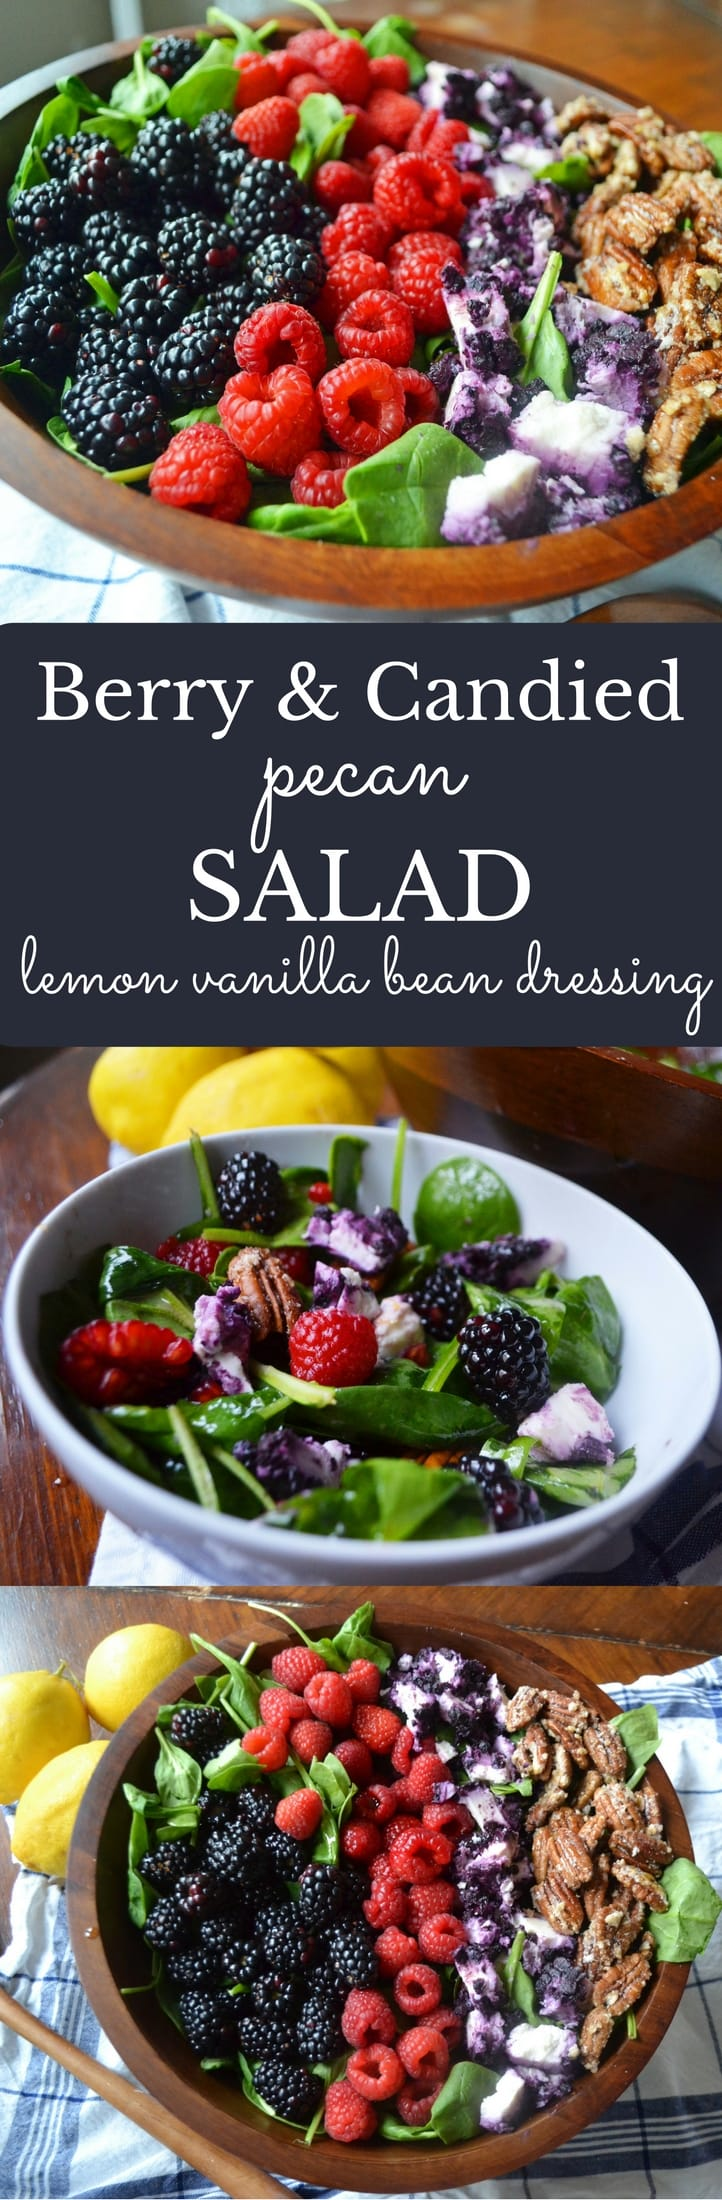 Berry Candied Pecan Salad with Lemon Vanilla Bean Dressing by Modern Honey -- www.modernhoney.com